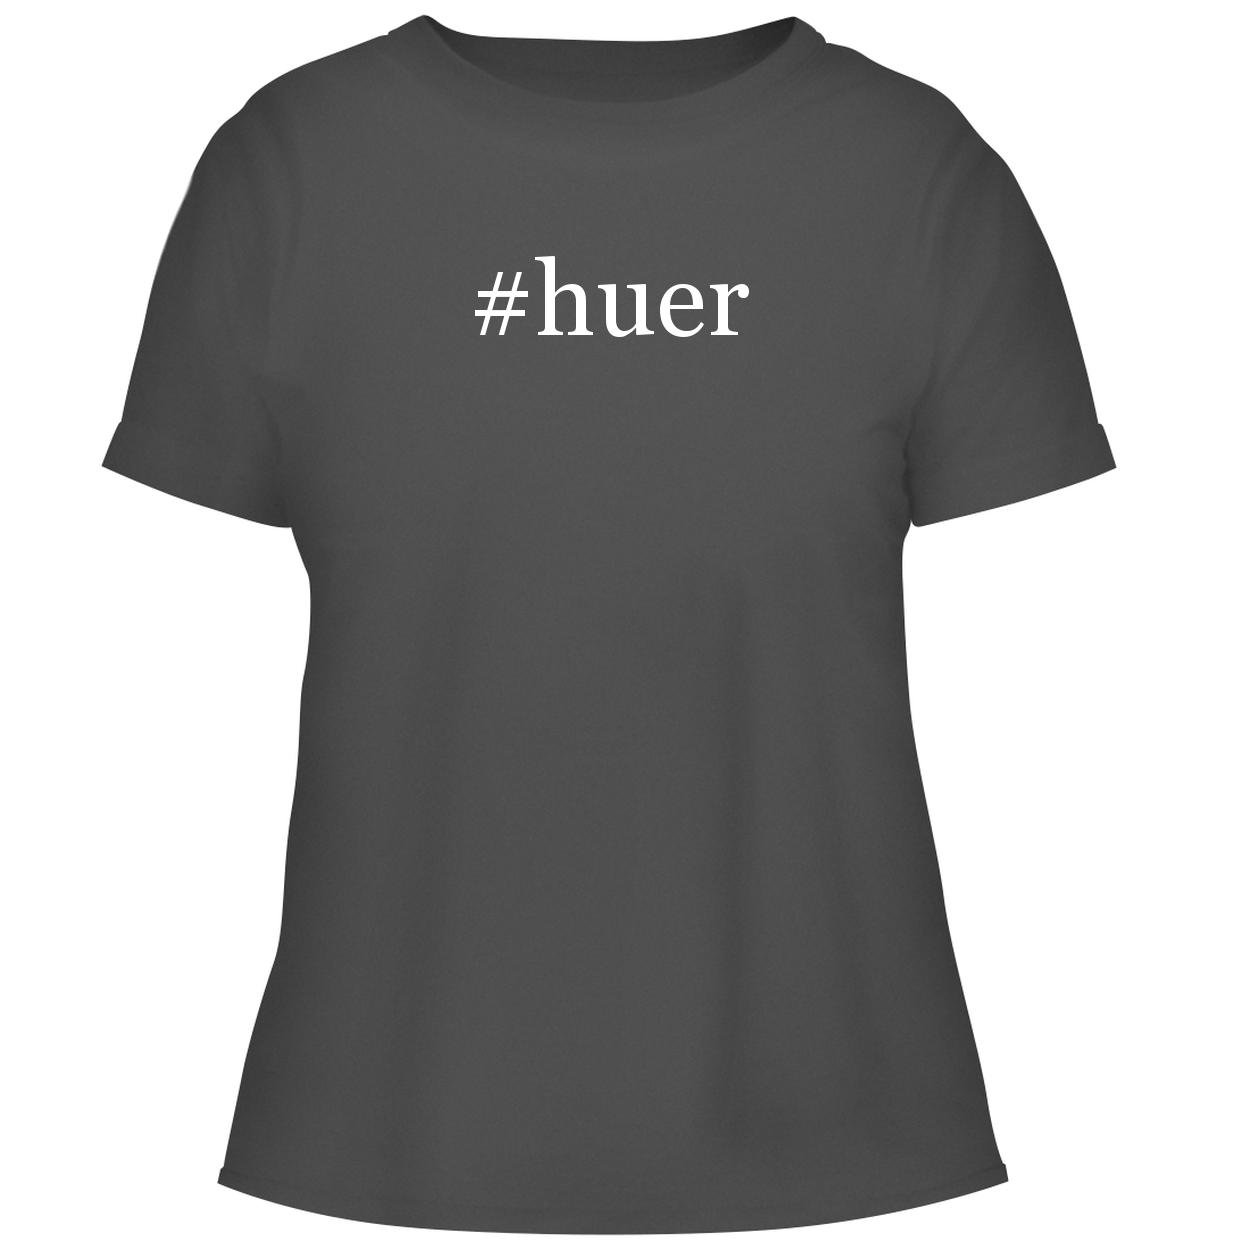 BH Cool Designs #Huer - Cute Women's Graphic Tee, Grey, XX-Large